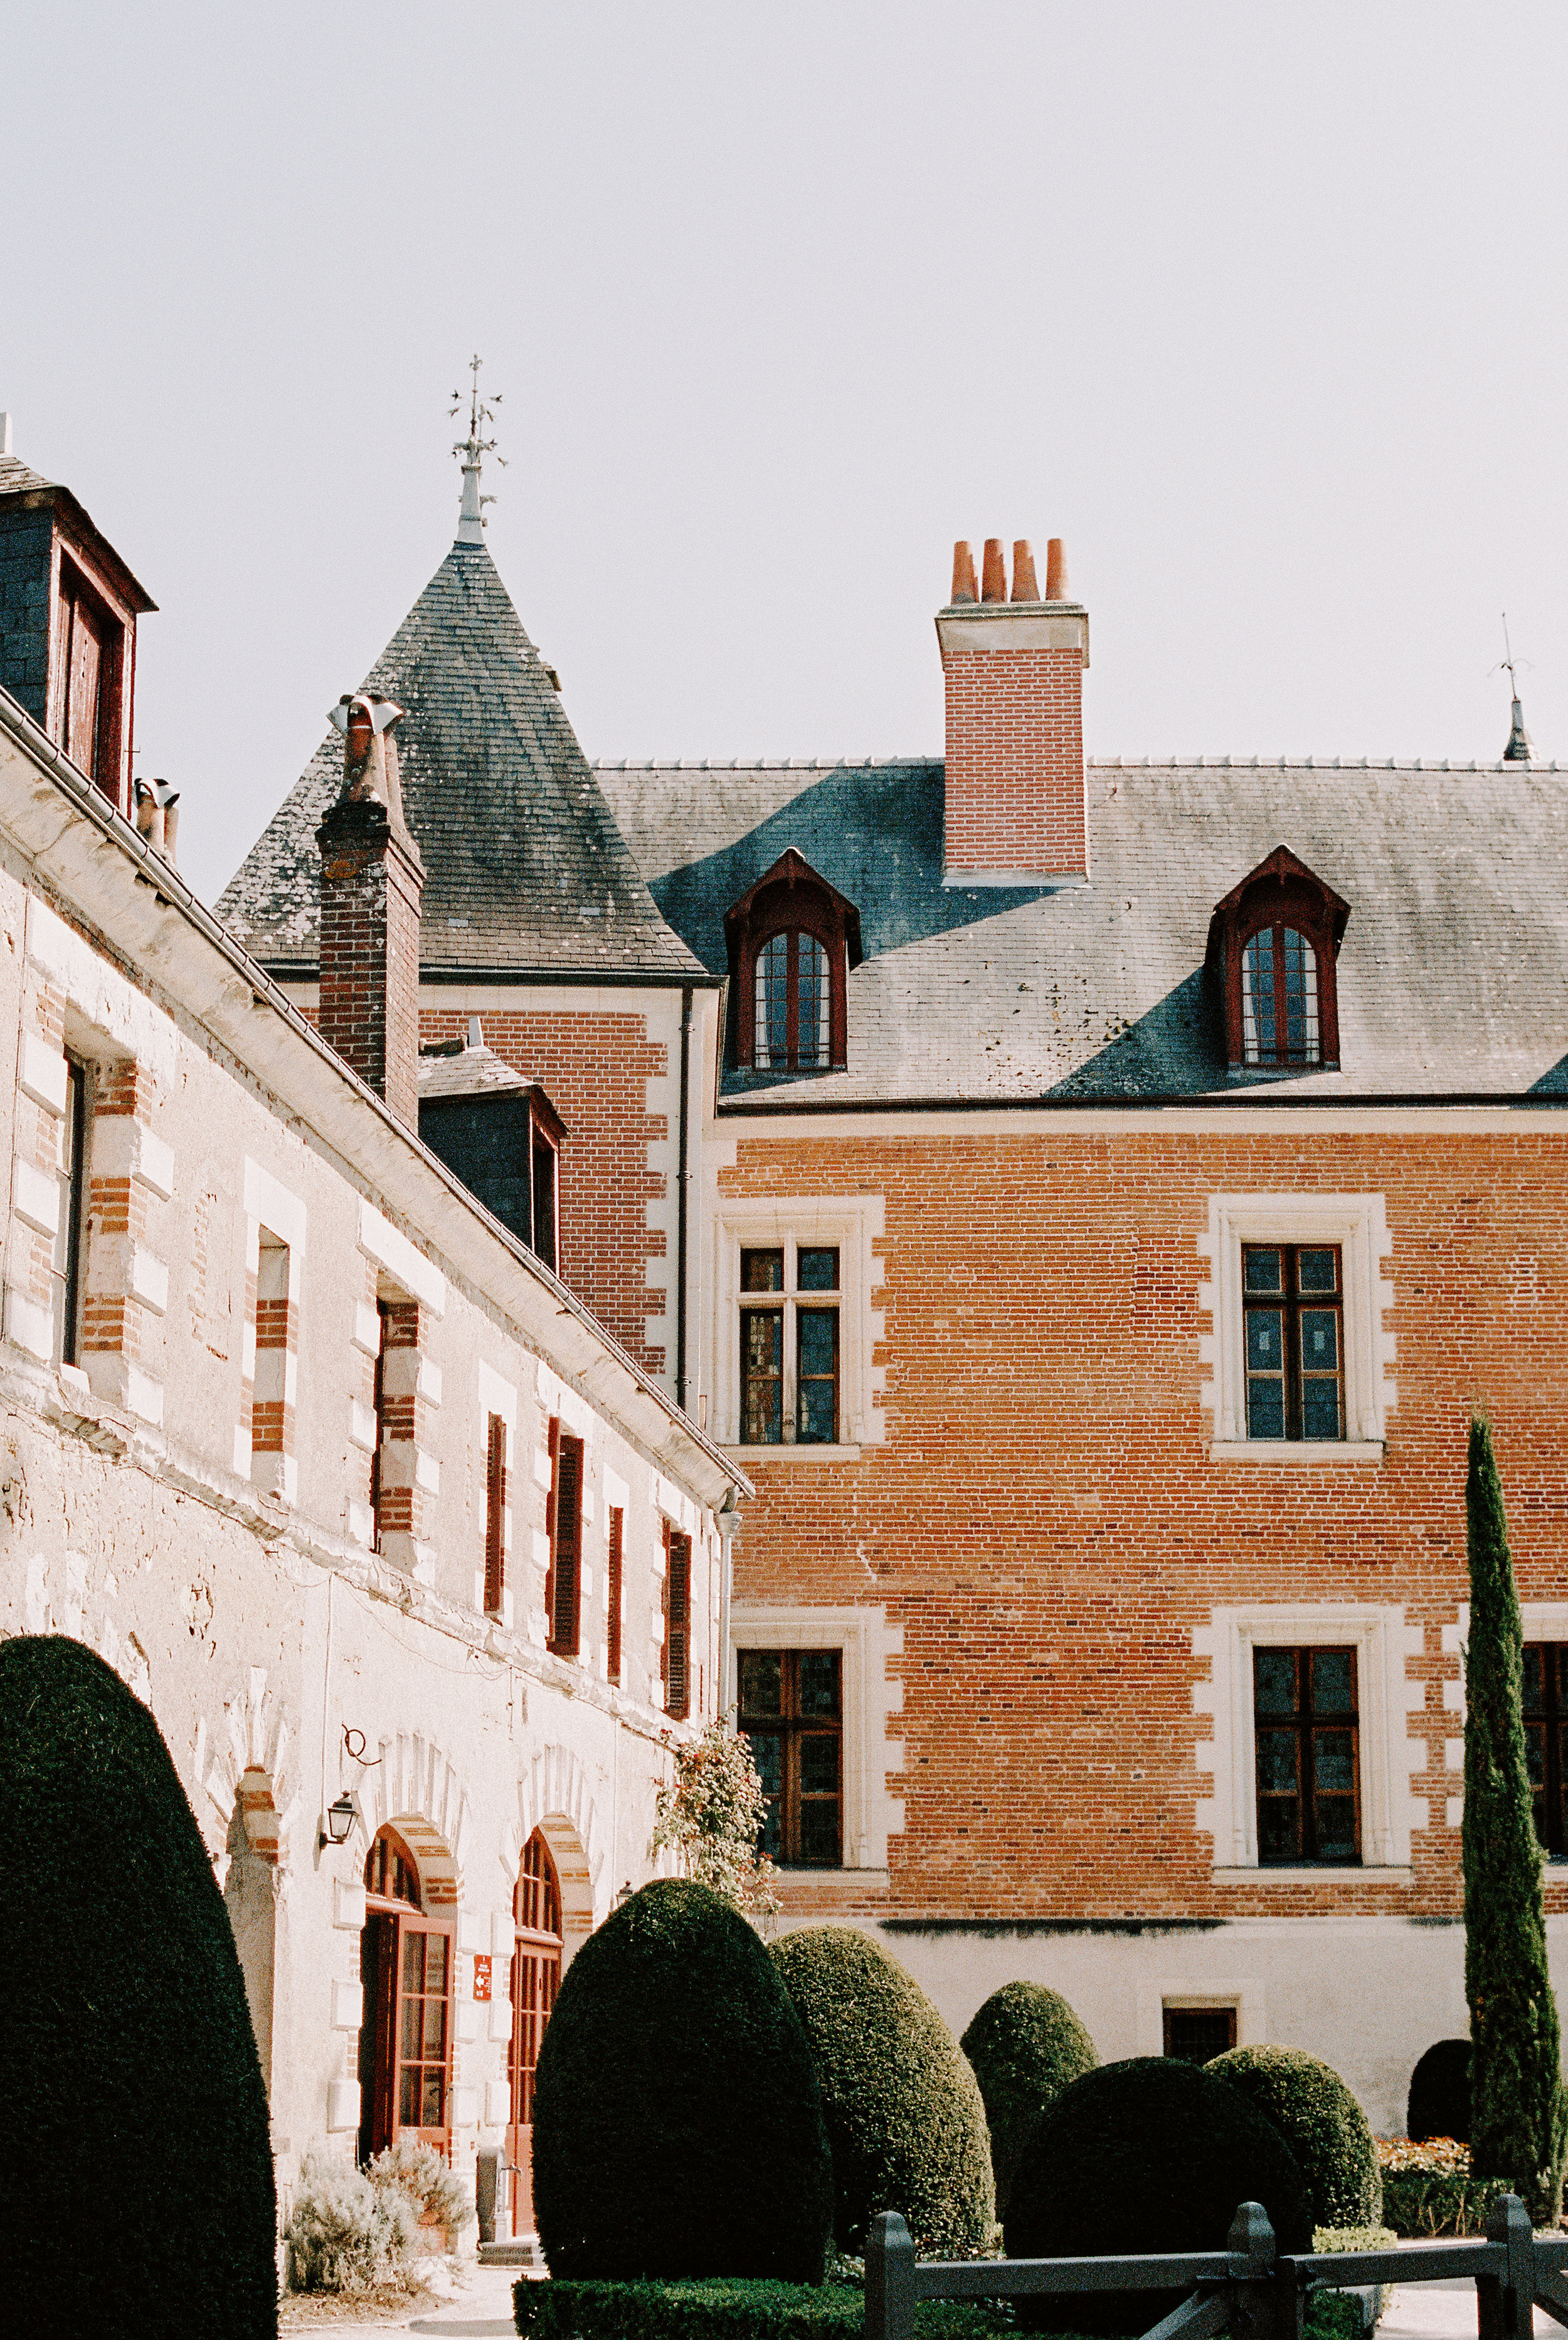 Chateau Clos Luce. Our first stop literally right off the train was to visit Leonardo da Vinci's retirement home. To say the homes and garden were gorgeous would be a gross understatement. I felt alive and inspired here.